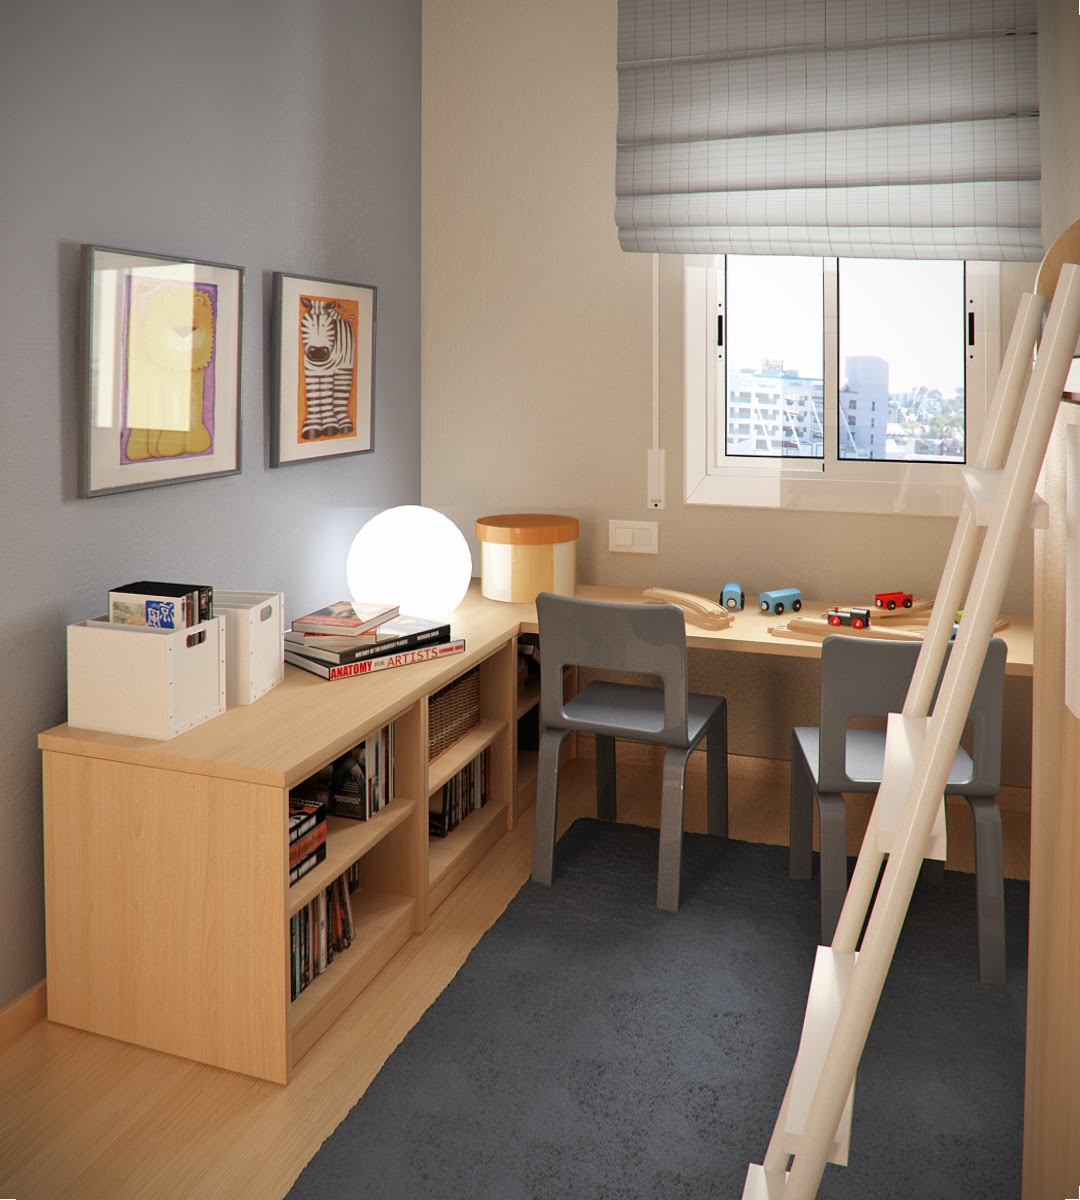 Small Kids Room small floorspace kids rooms